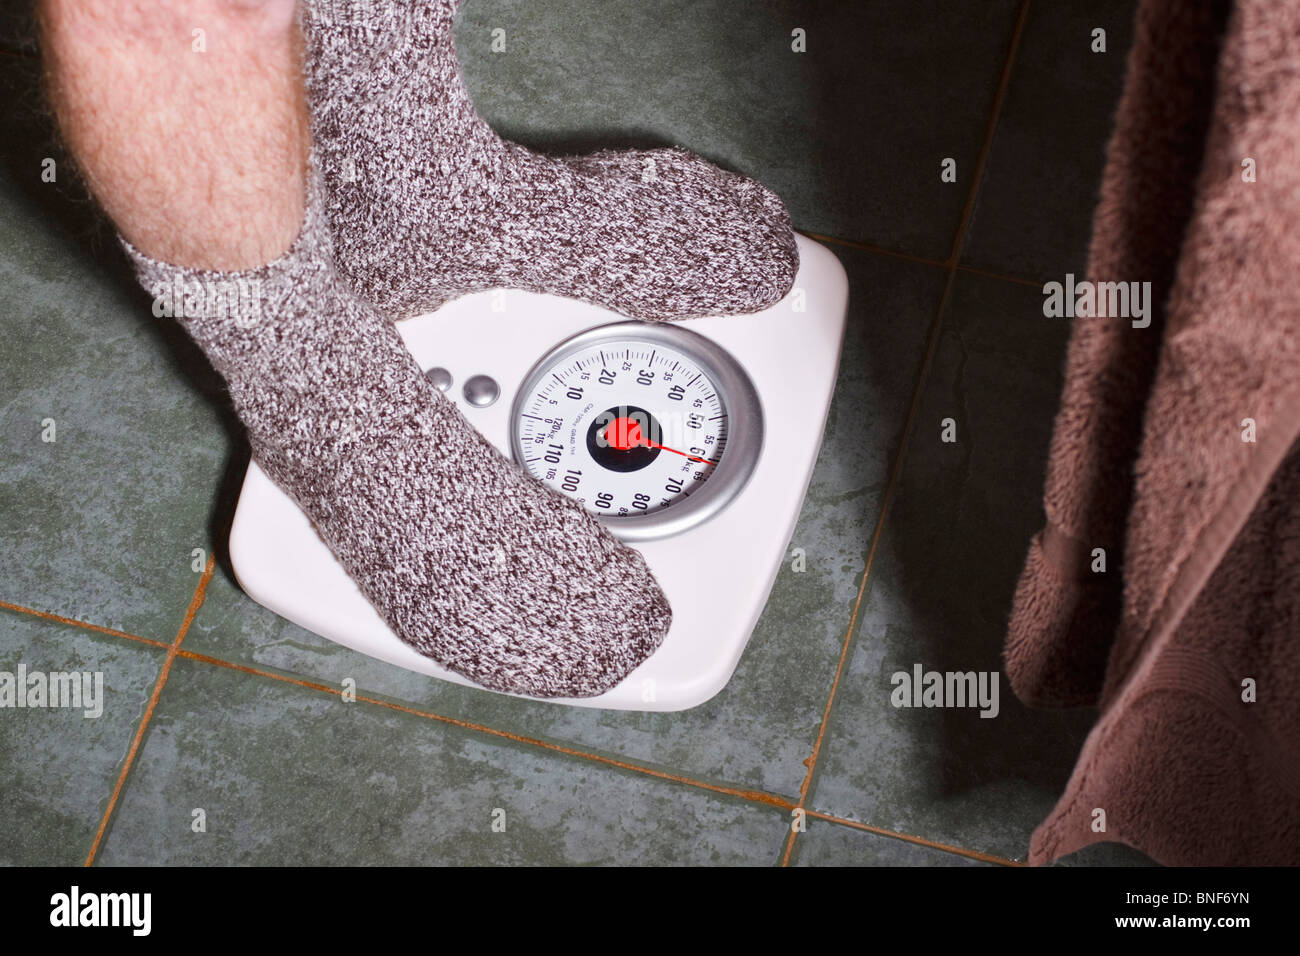 Man in socks weighing himself on a bathroom scale. Stock Photo